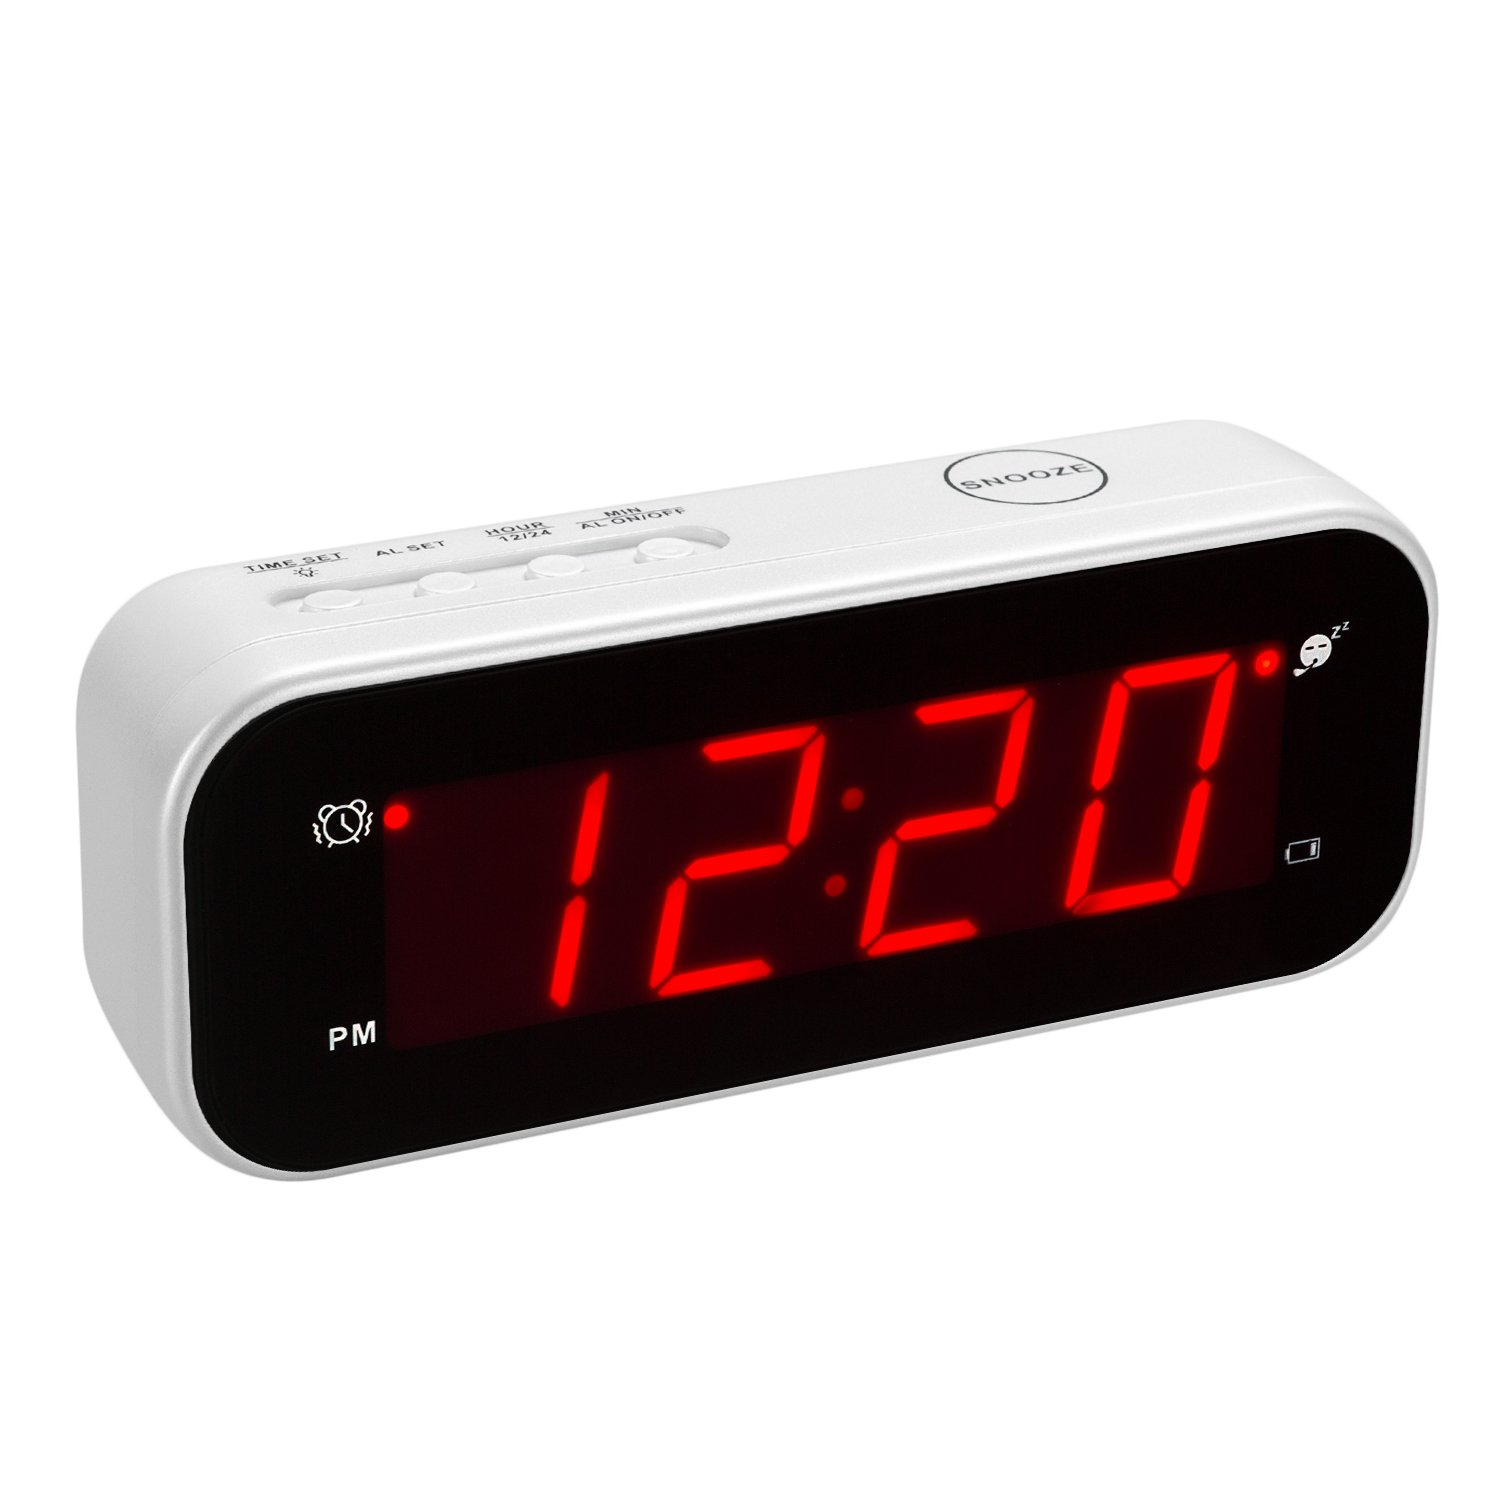 Kwanwa Small Digital LED Alarm Clock Battery Powered Operated Only with Thermometer for Travel Kids Girls Teens